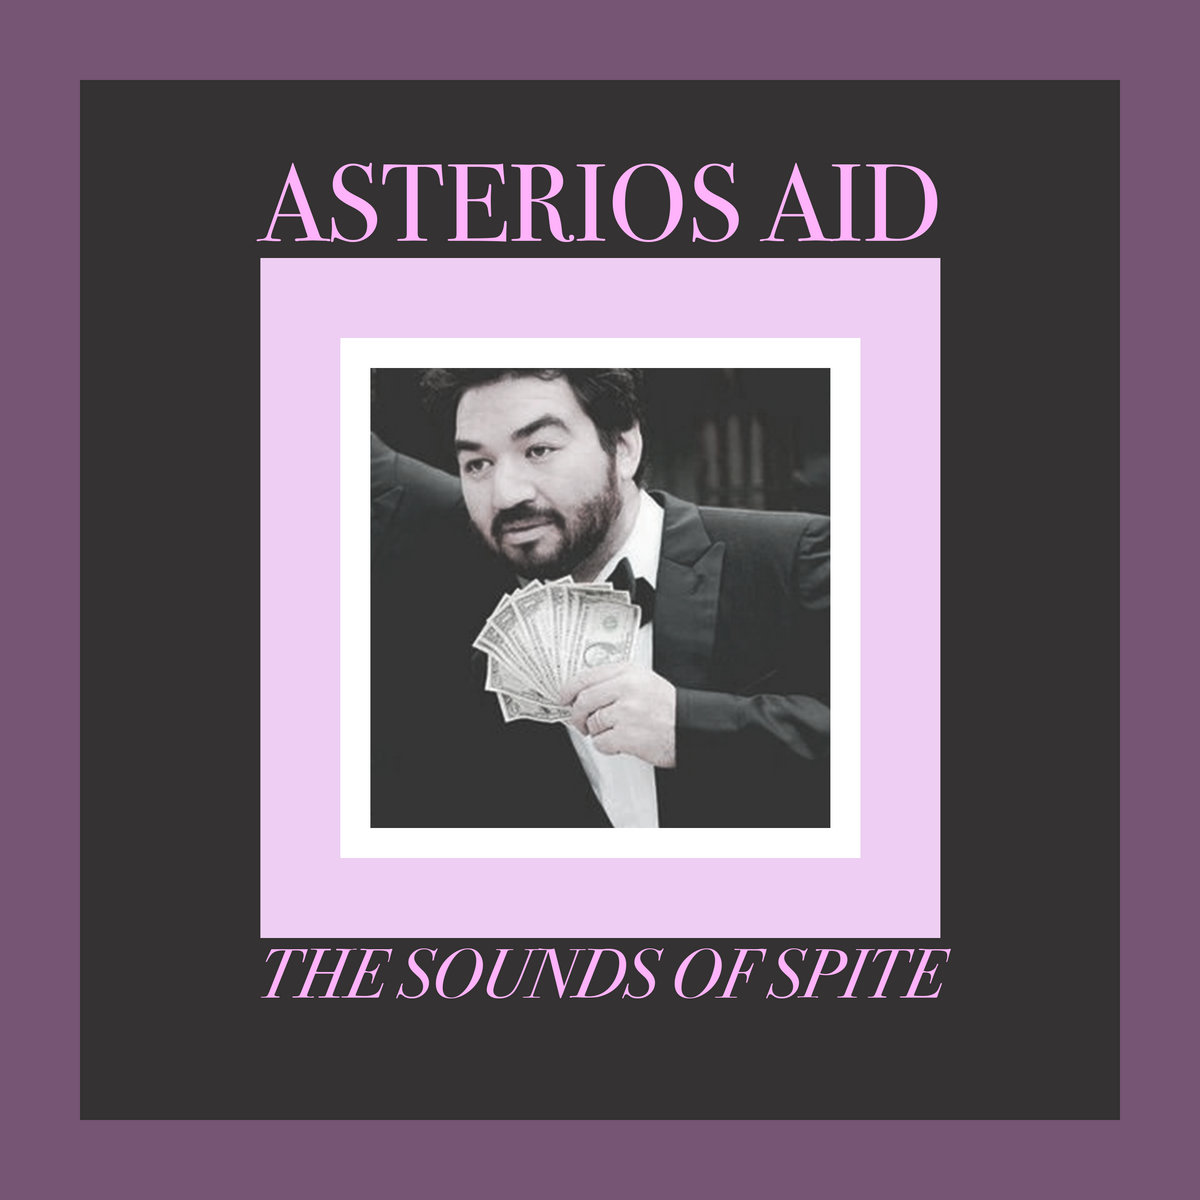 80s Girl Left With Your Friend Asterios Aid